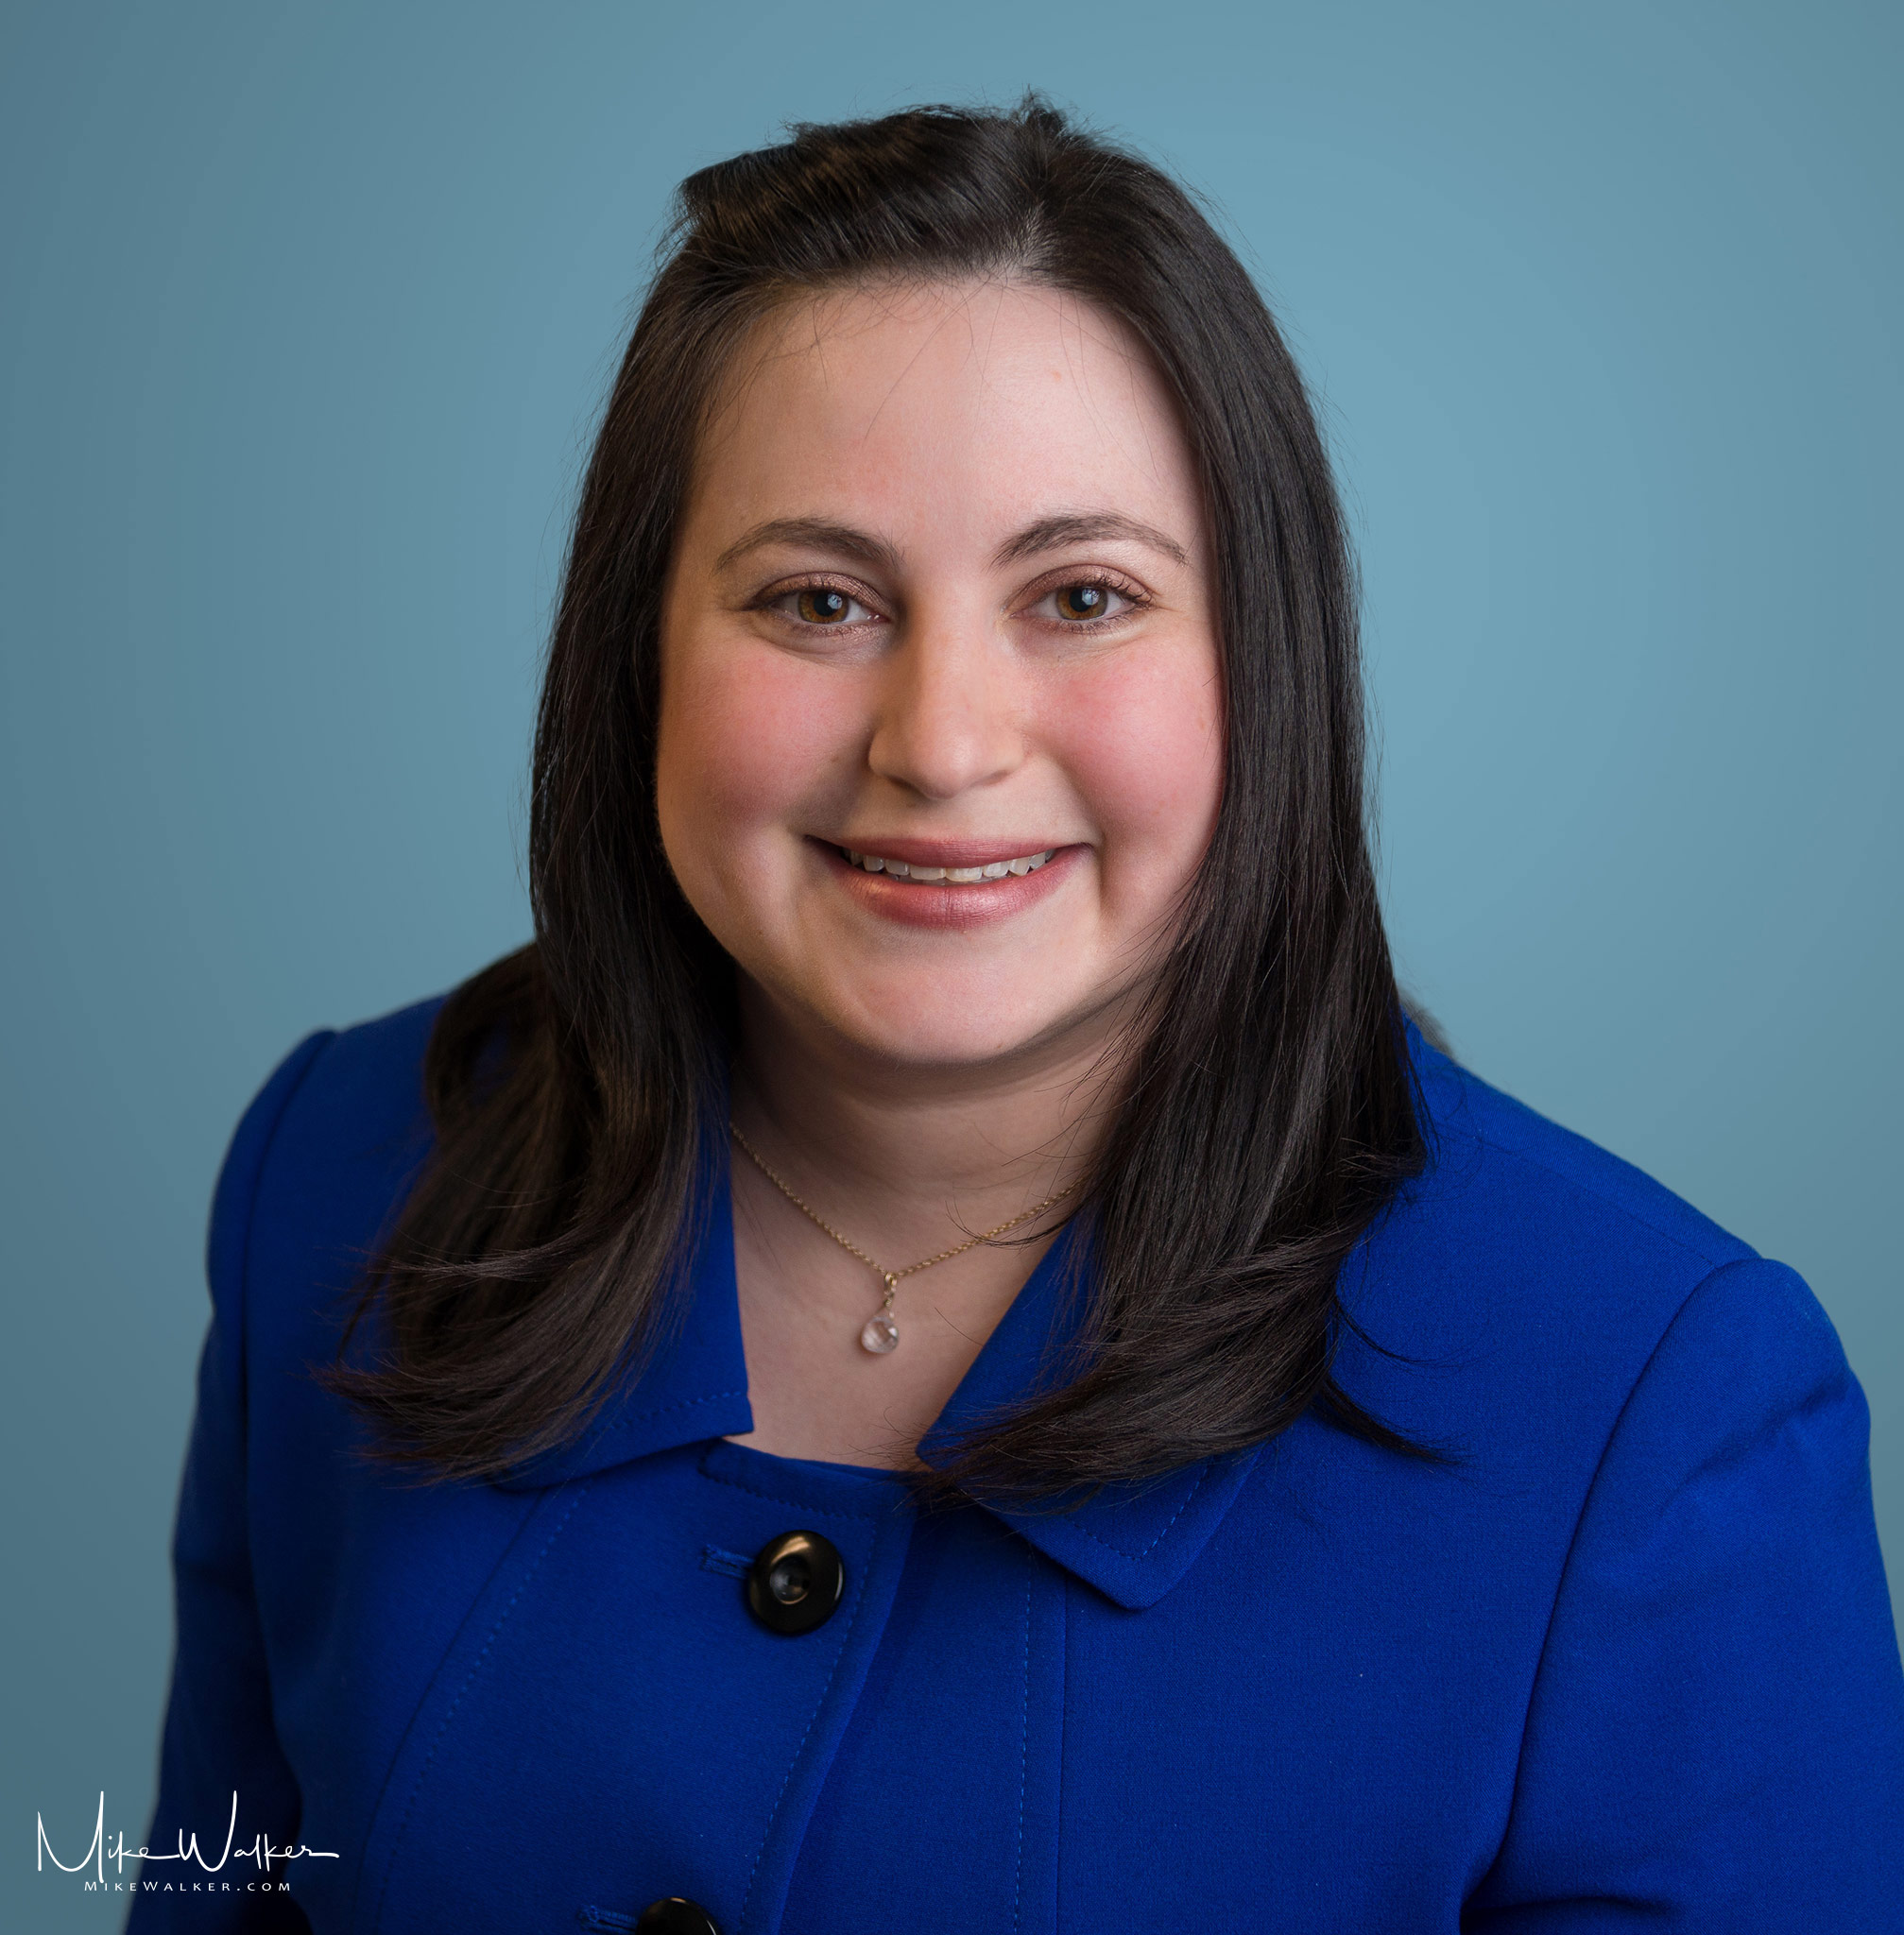 Corporate headshot for Somerset Psychological Group. Corporate headshots by Mike Walker.